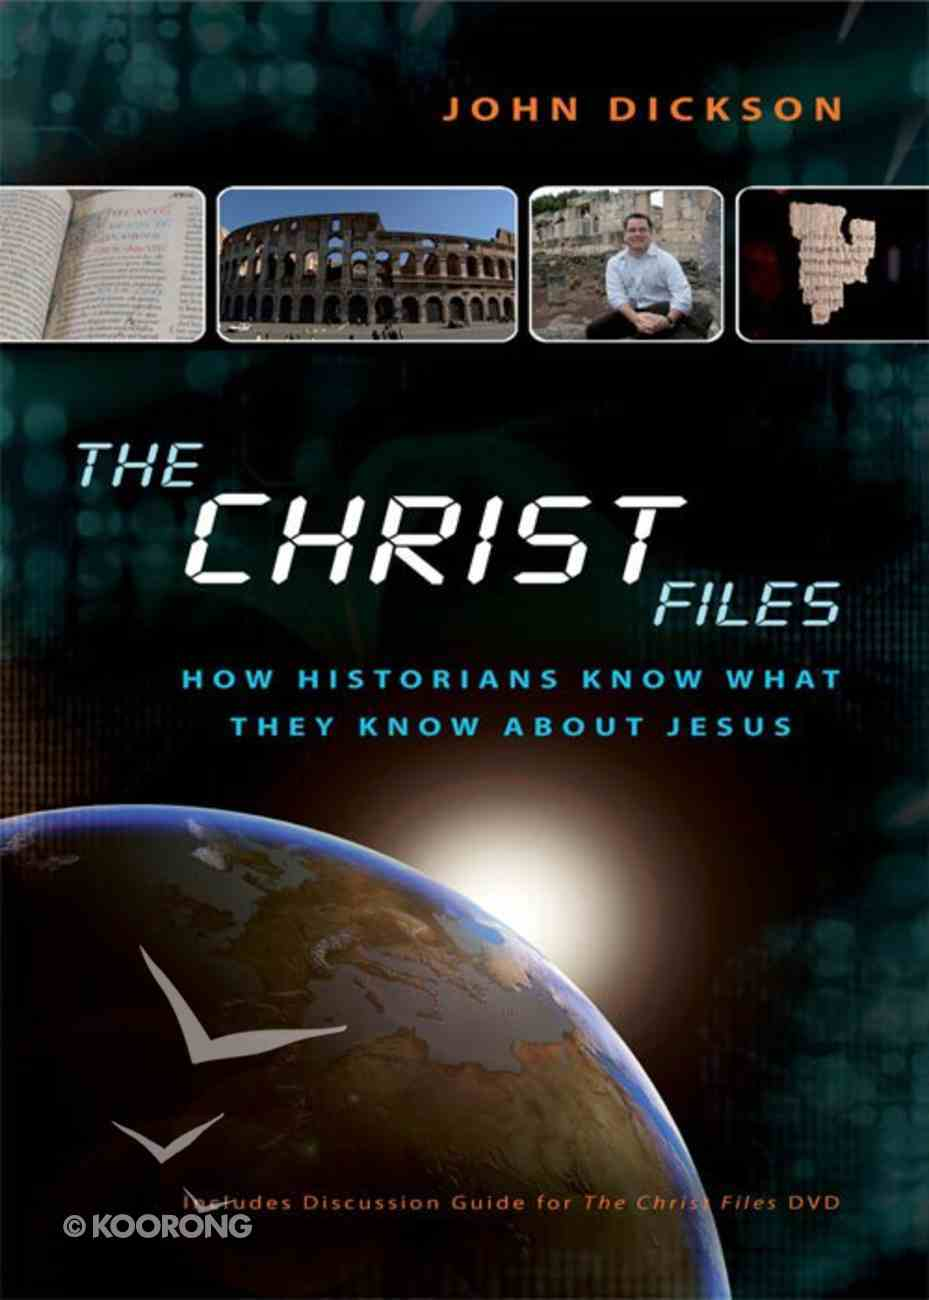 The Christ Files: How Historians Know What They Know About Jesus eBook